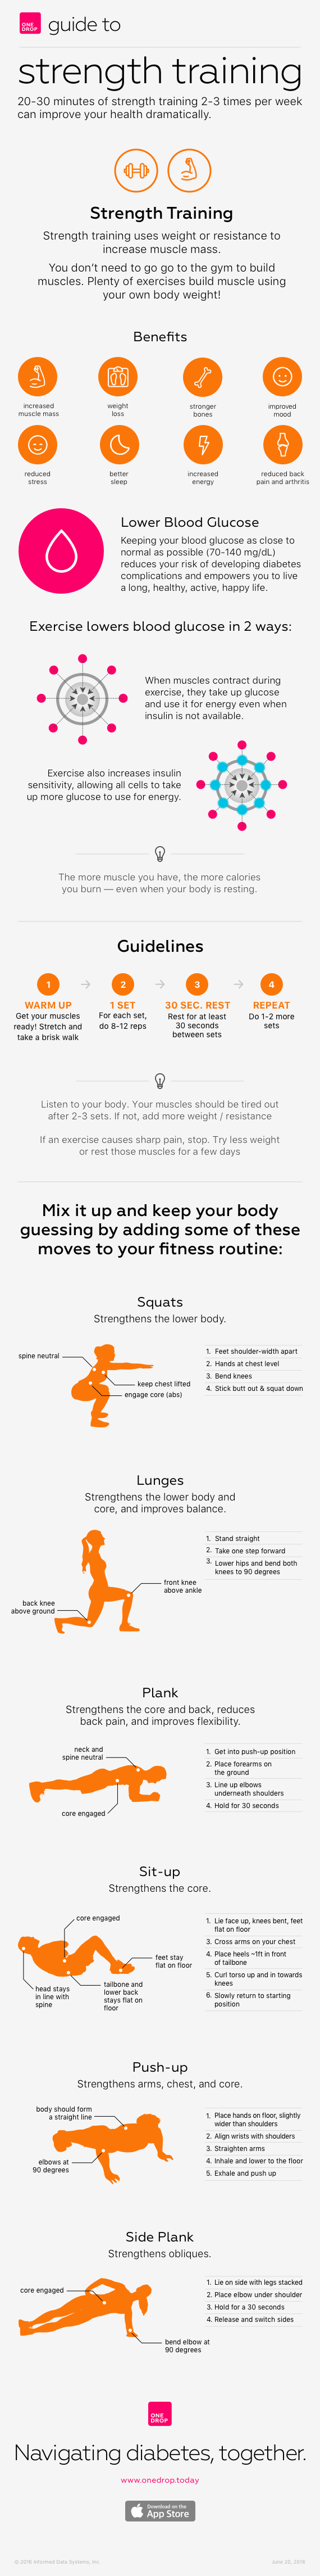 strength-training infographic diabetes management